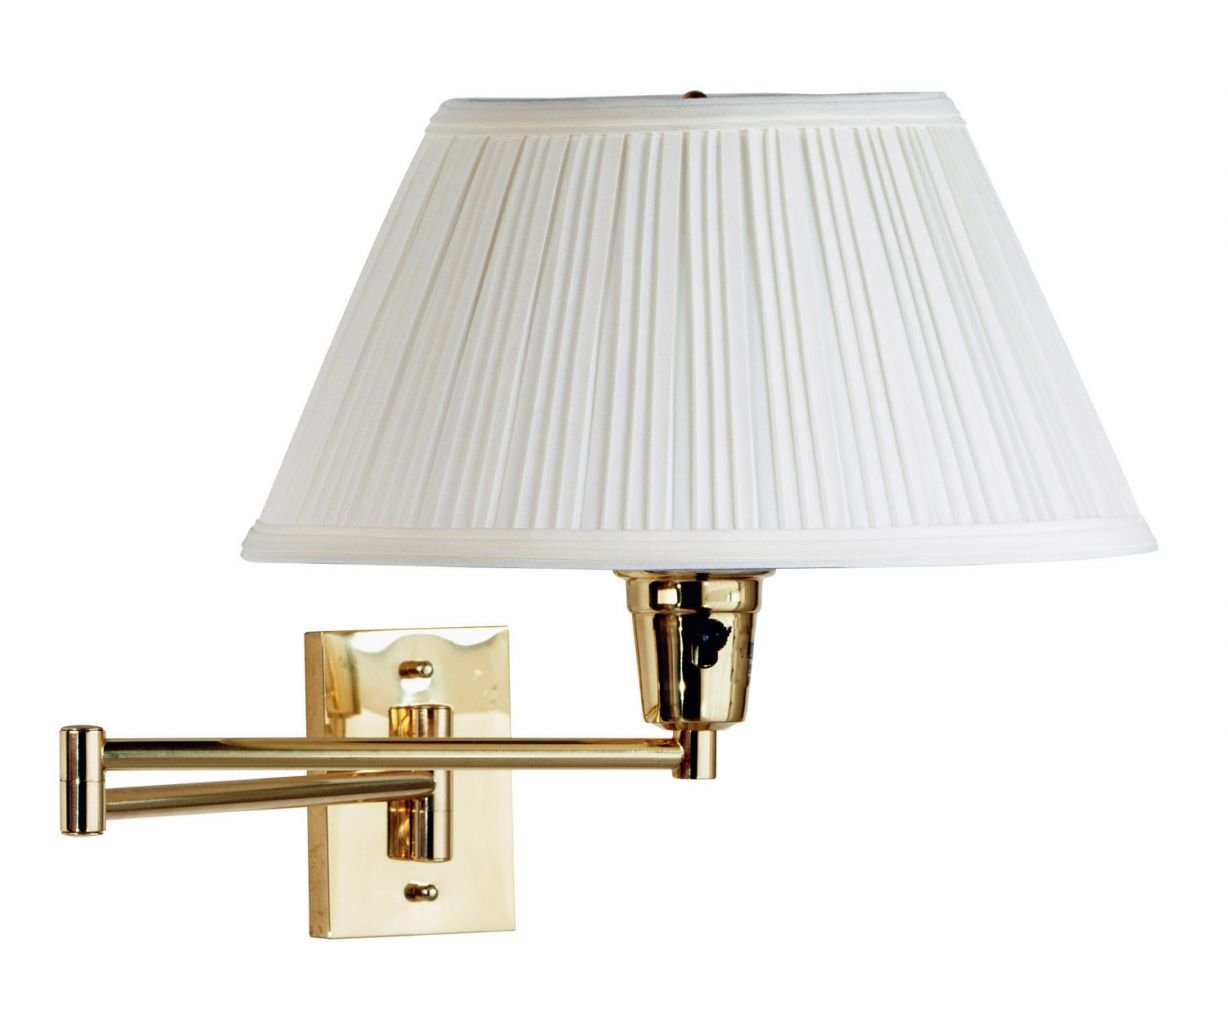 Kenroy Home Element Wall Swing Arm Lamp - 16W in. Polished